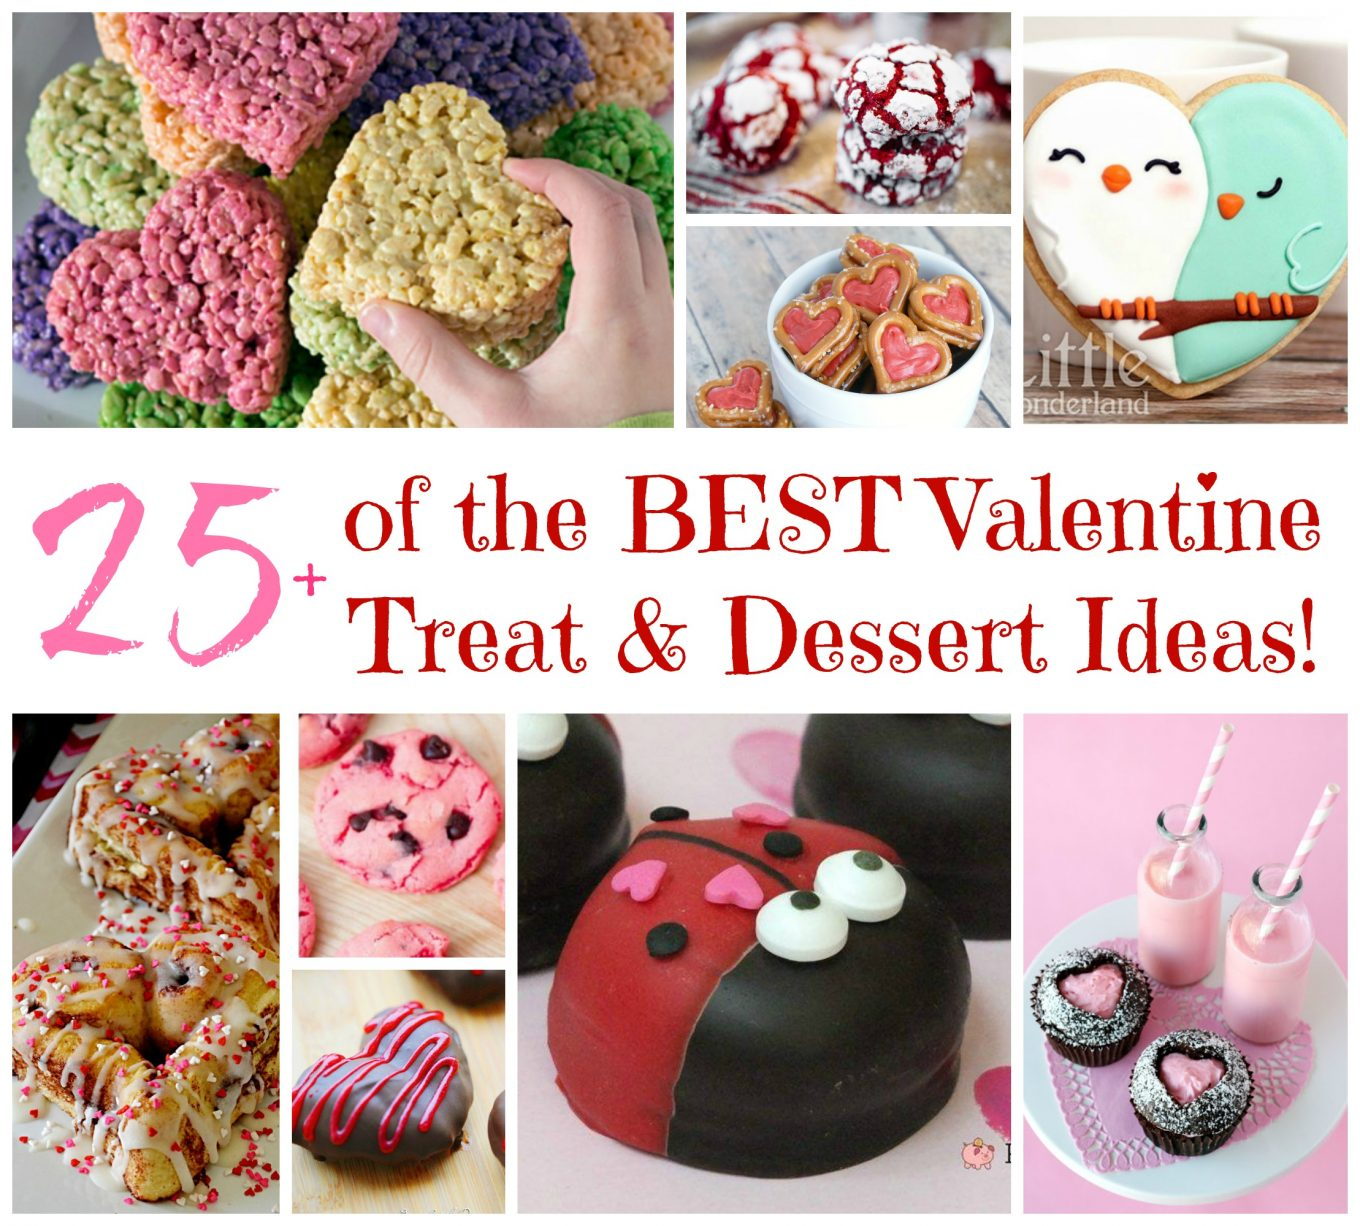 Over 25 Of The BEST Valentine's Day Dessert & Treat Ideas